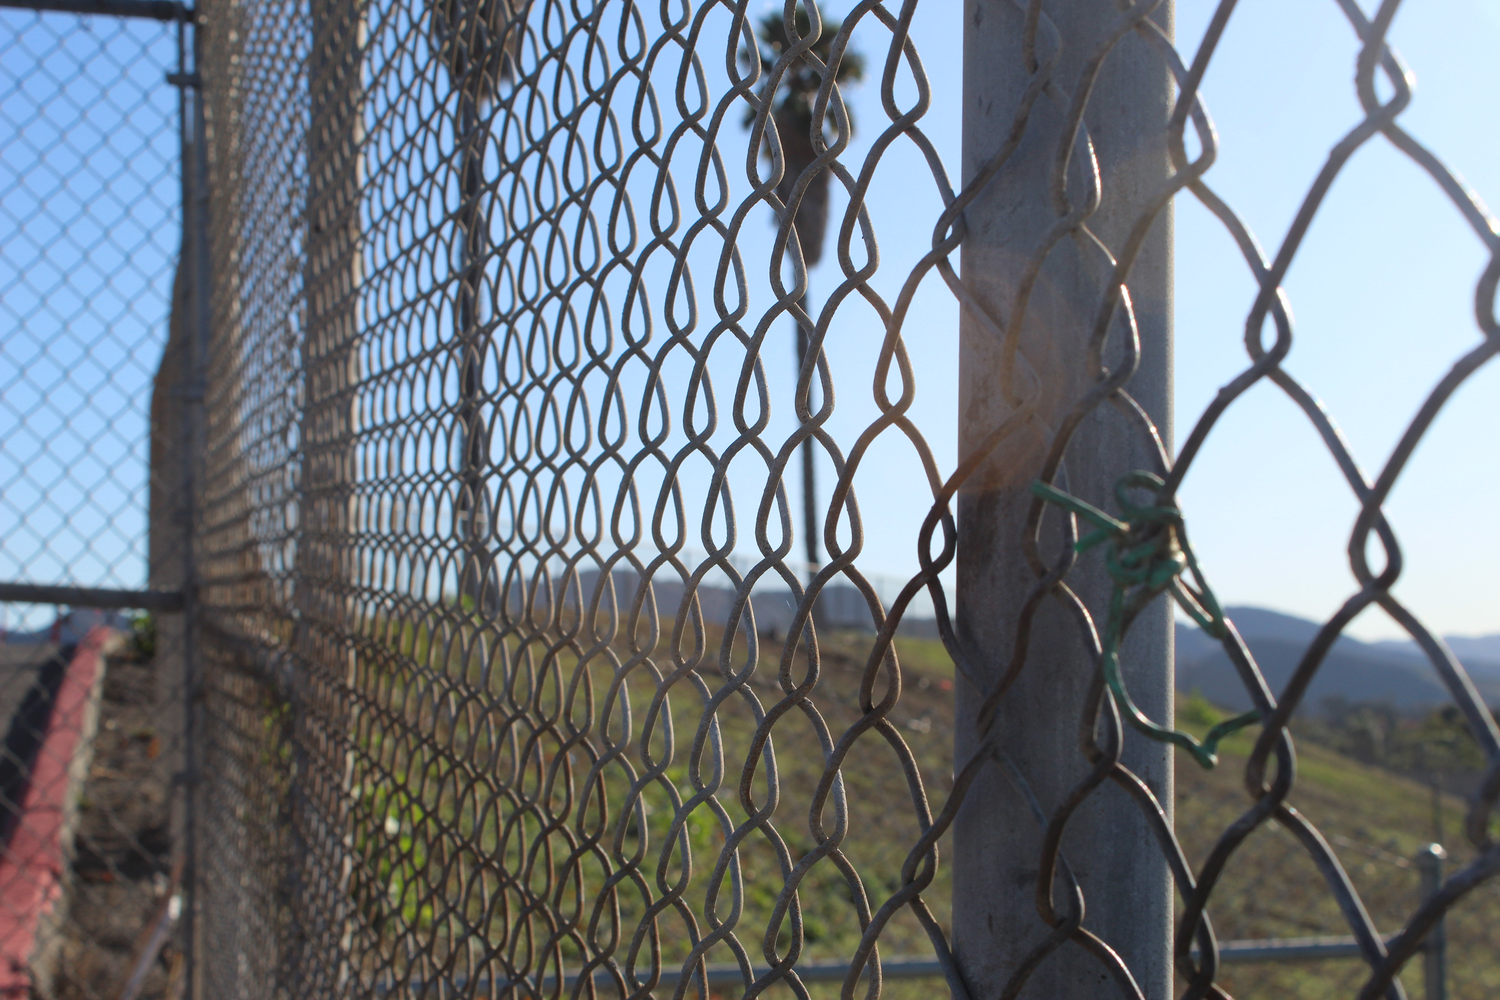 Fences will be soon be installed at Cam High with the Measure A bond money.